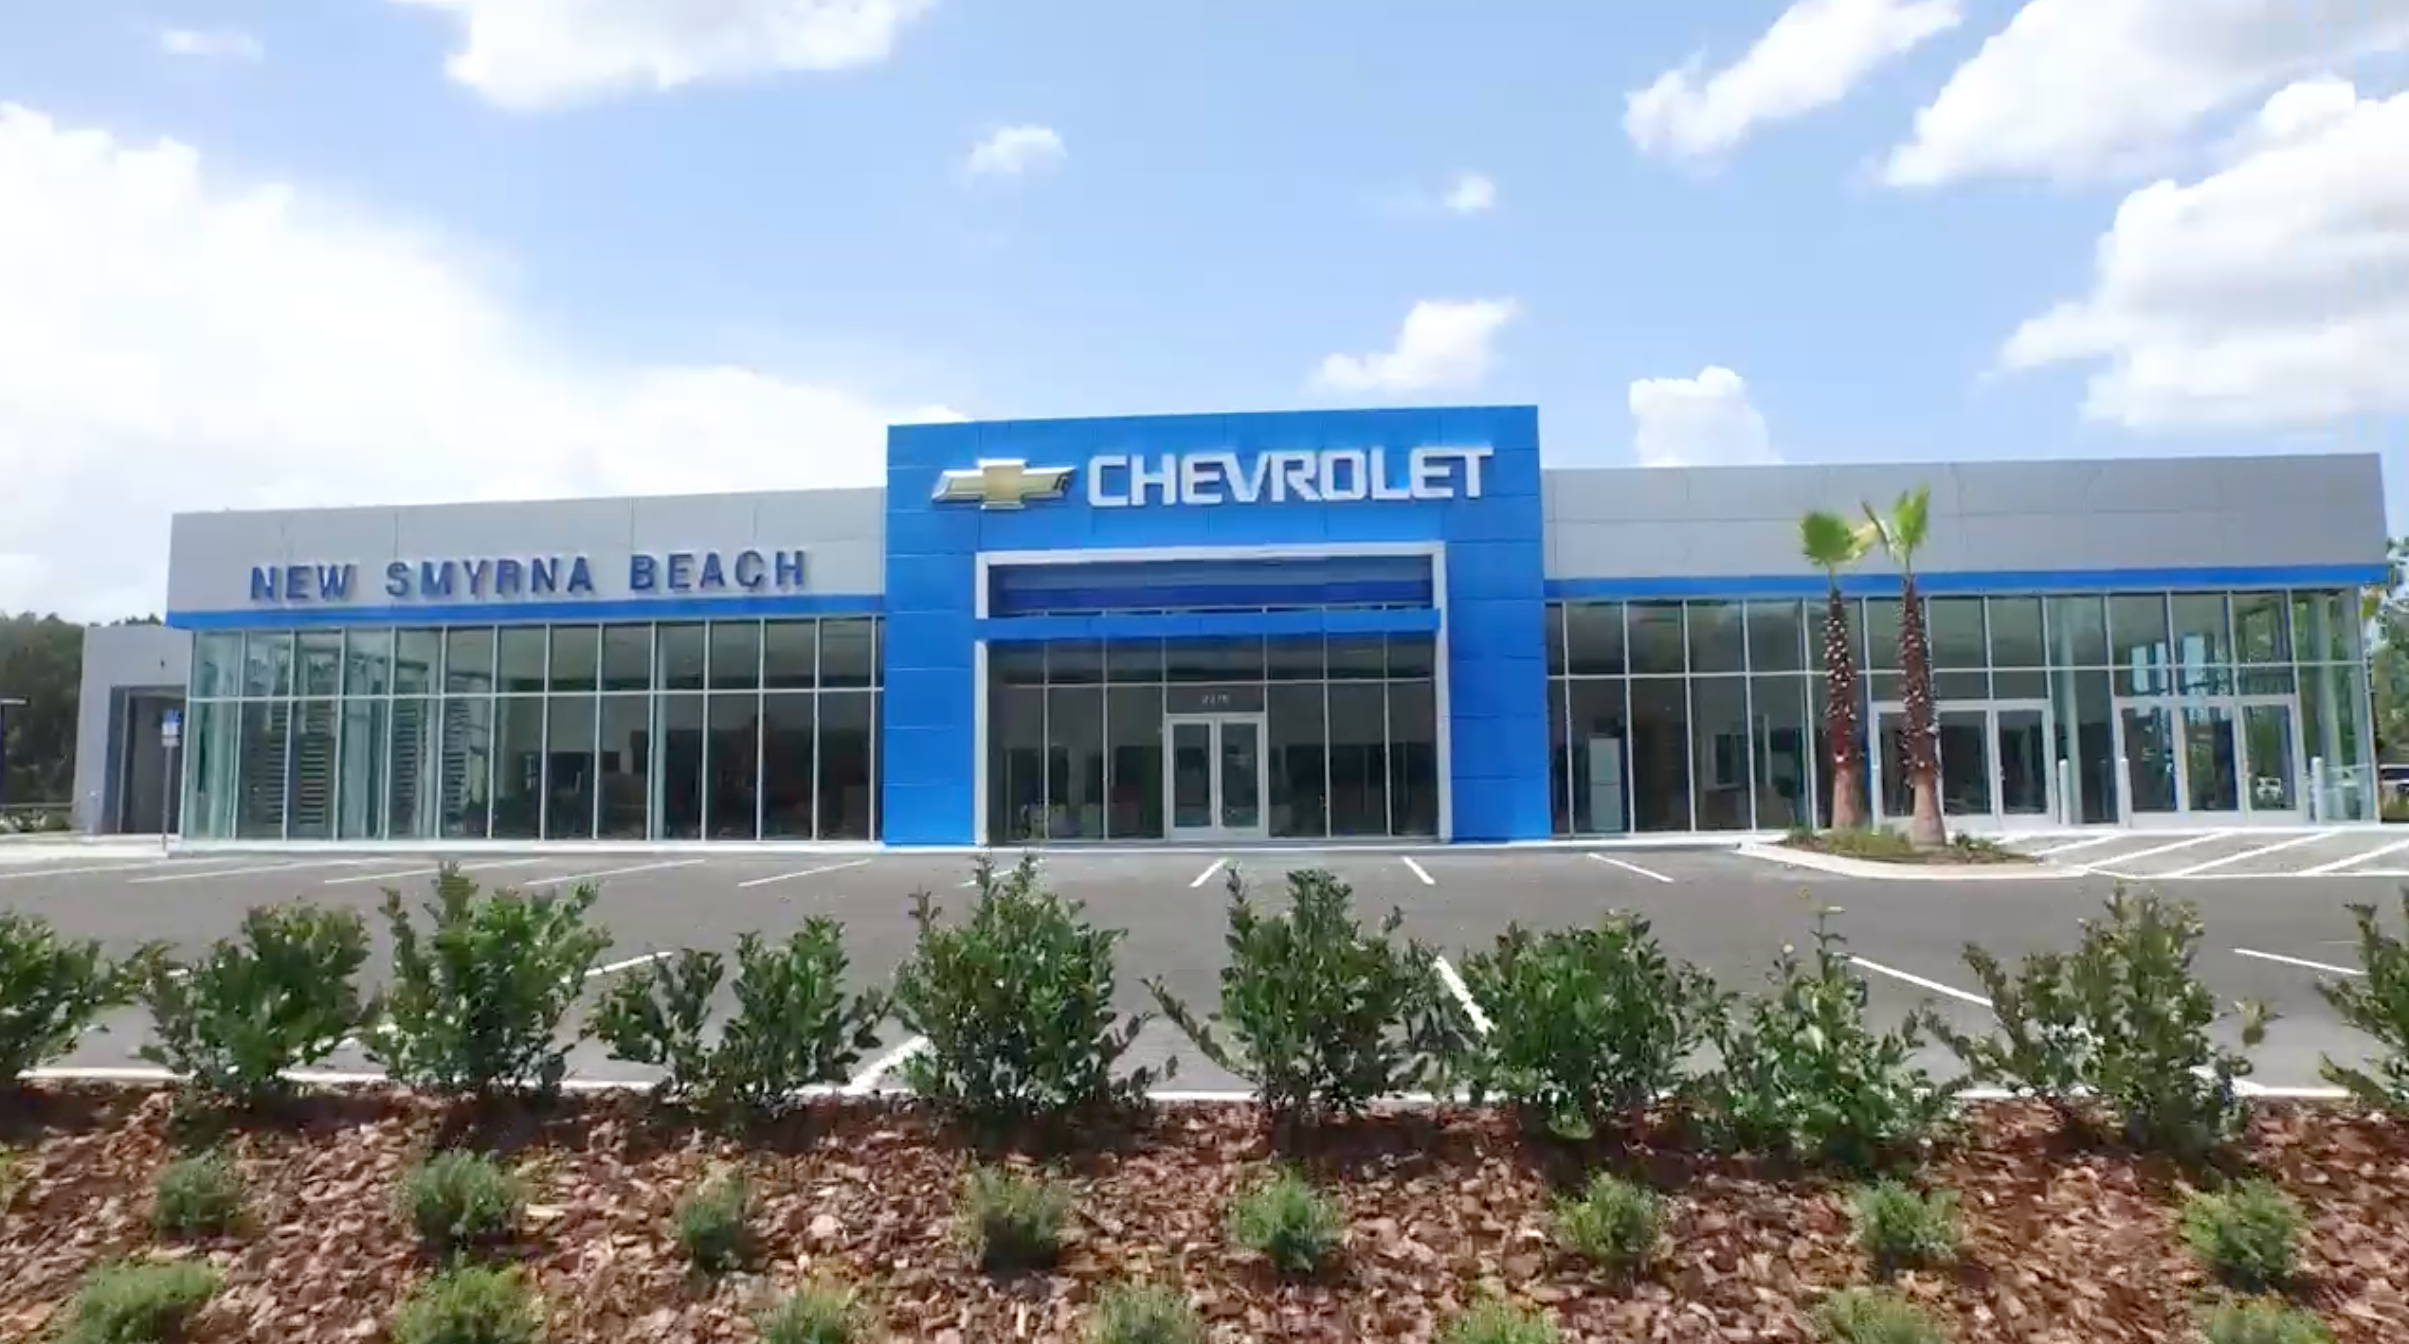 New Smyrna Beach Chevrolet 2375 State Road 44 New Smyrna Beach FL